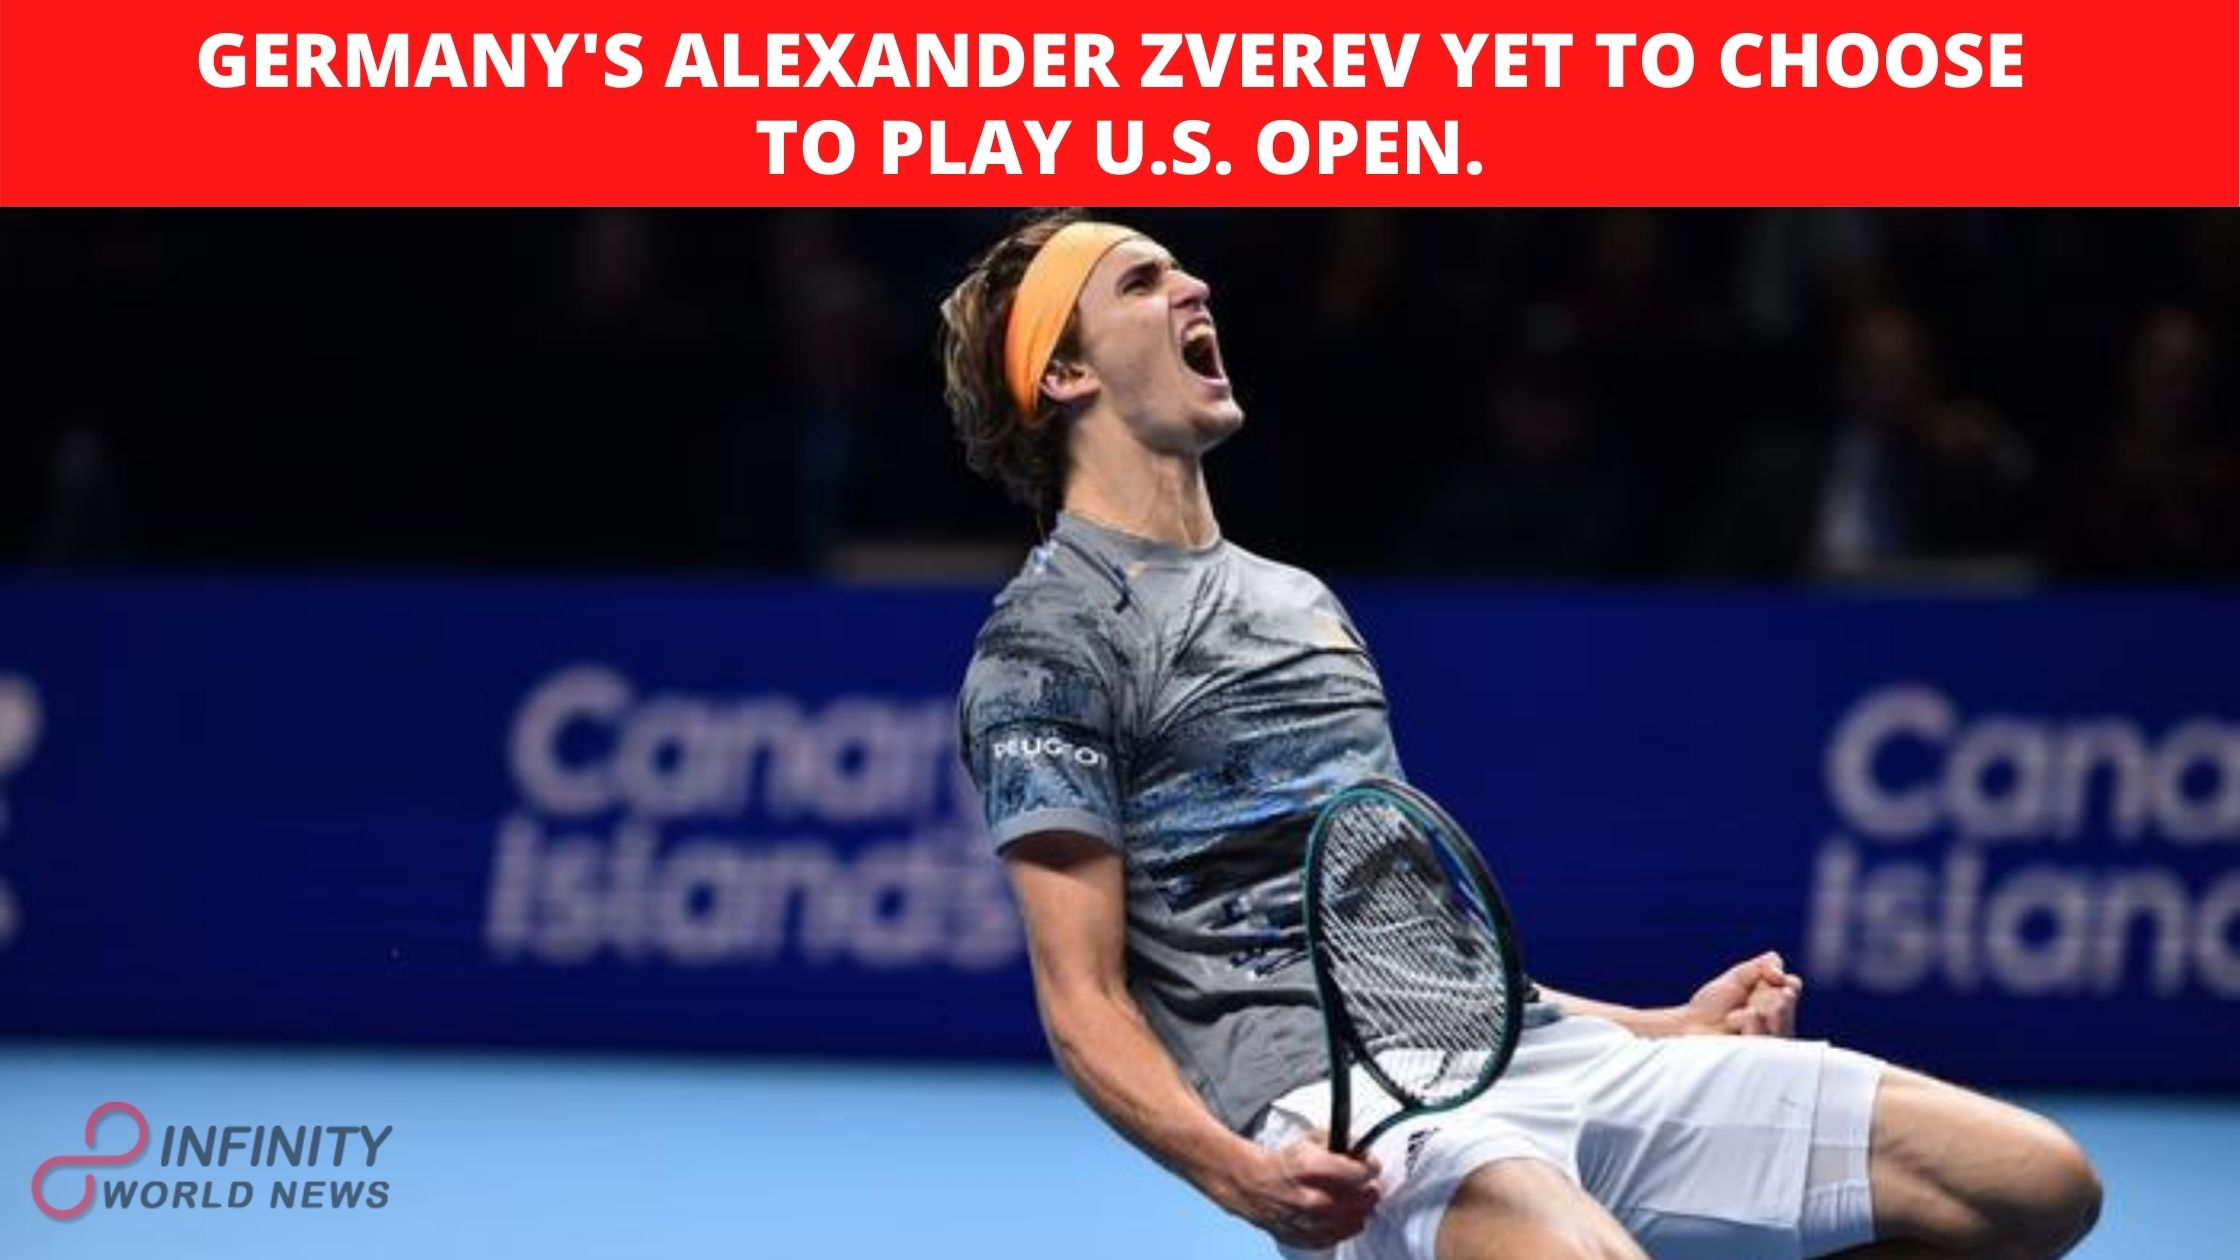 Germany's Alexander Zverev yet to choose to play U.S. Open.